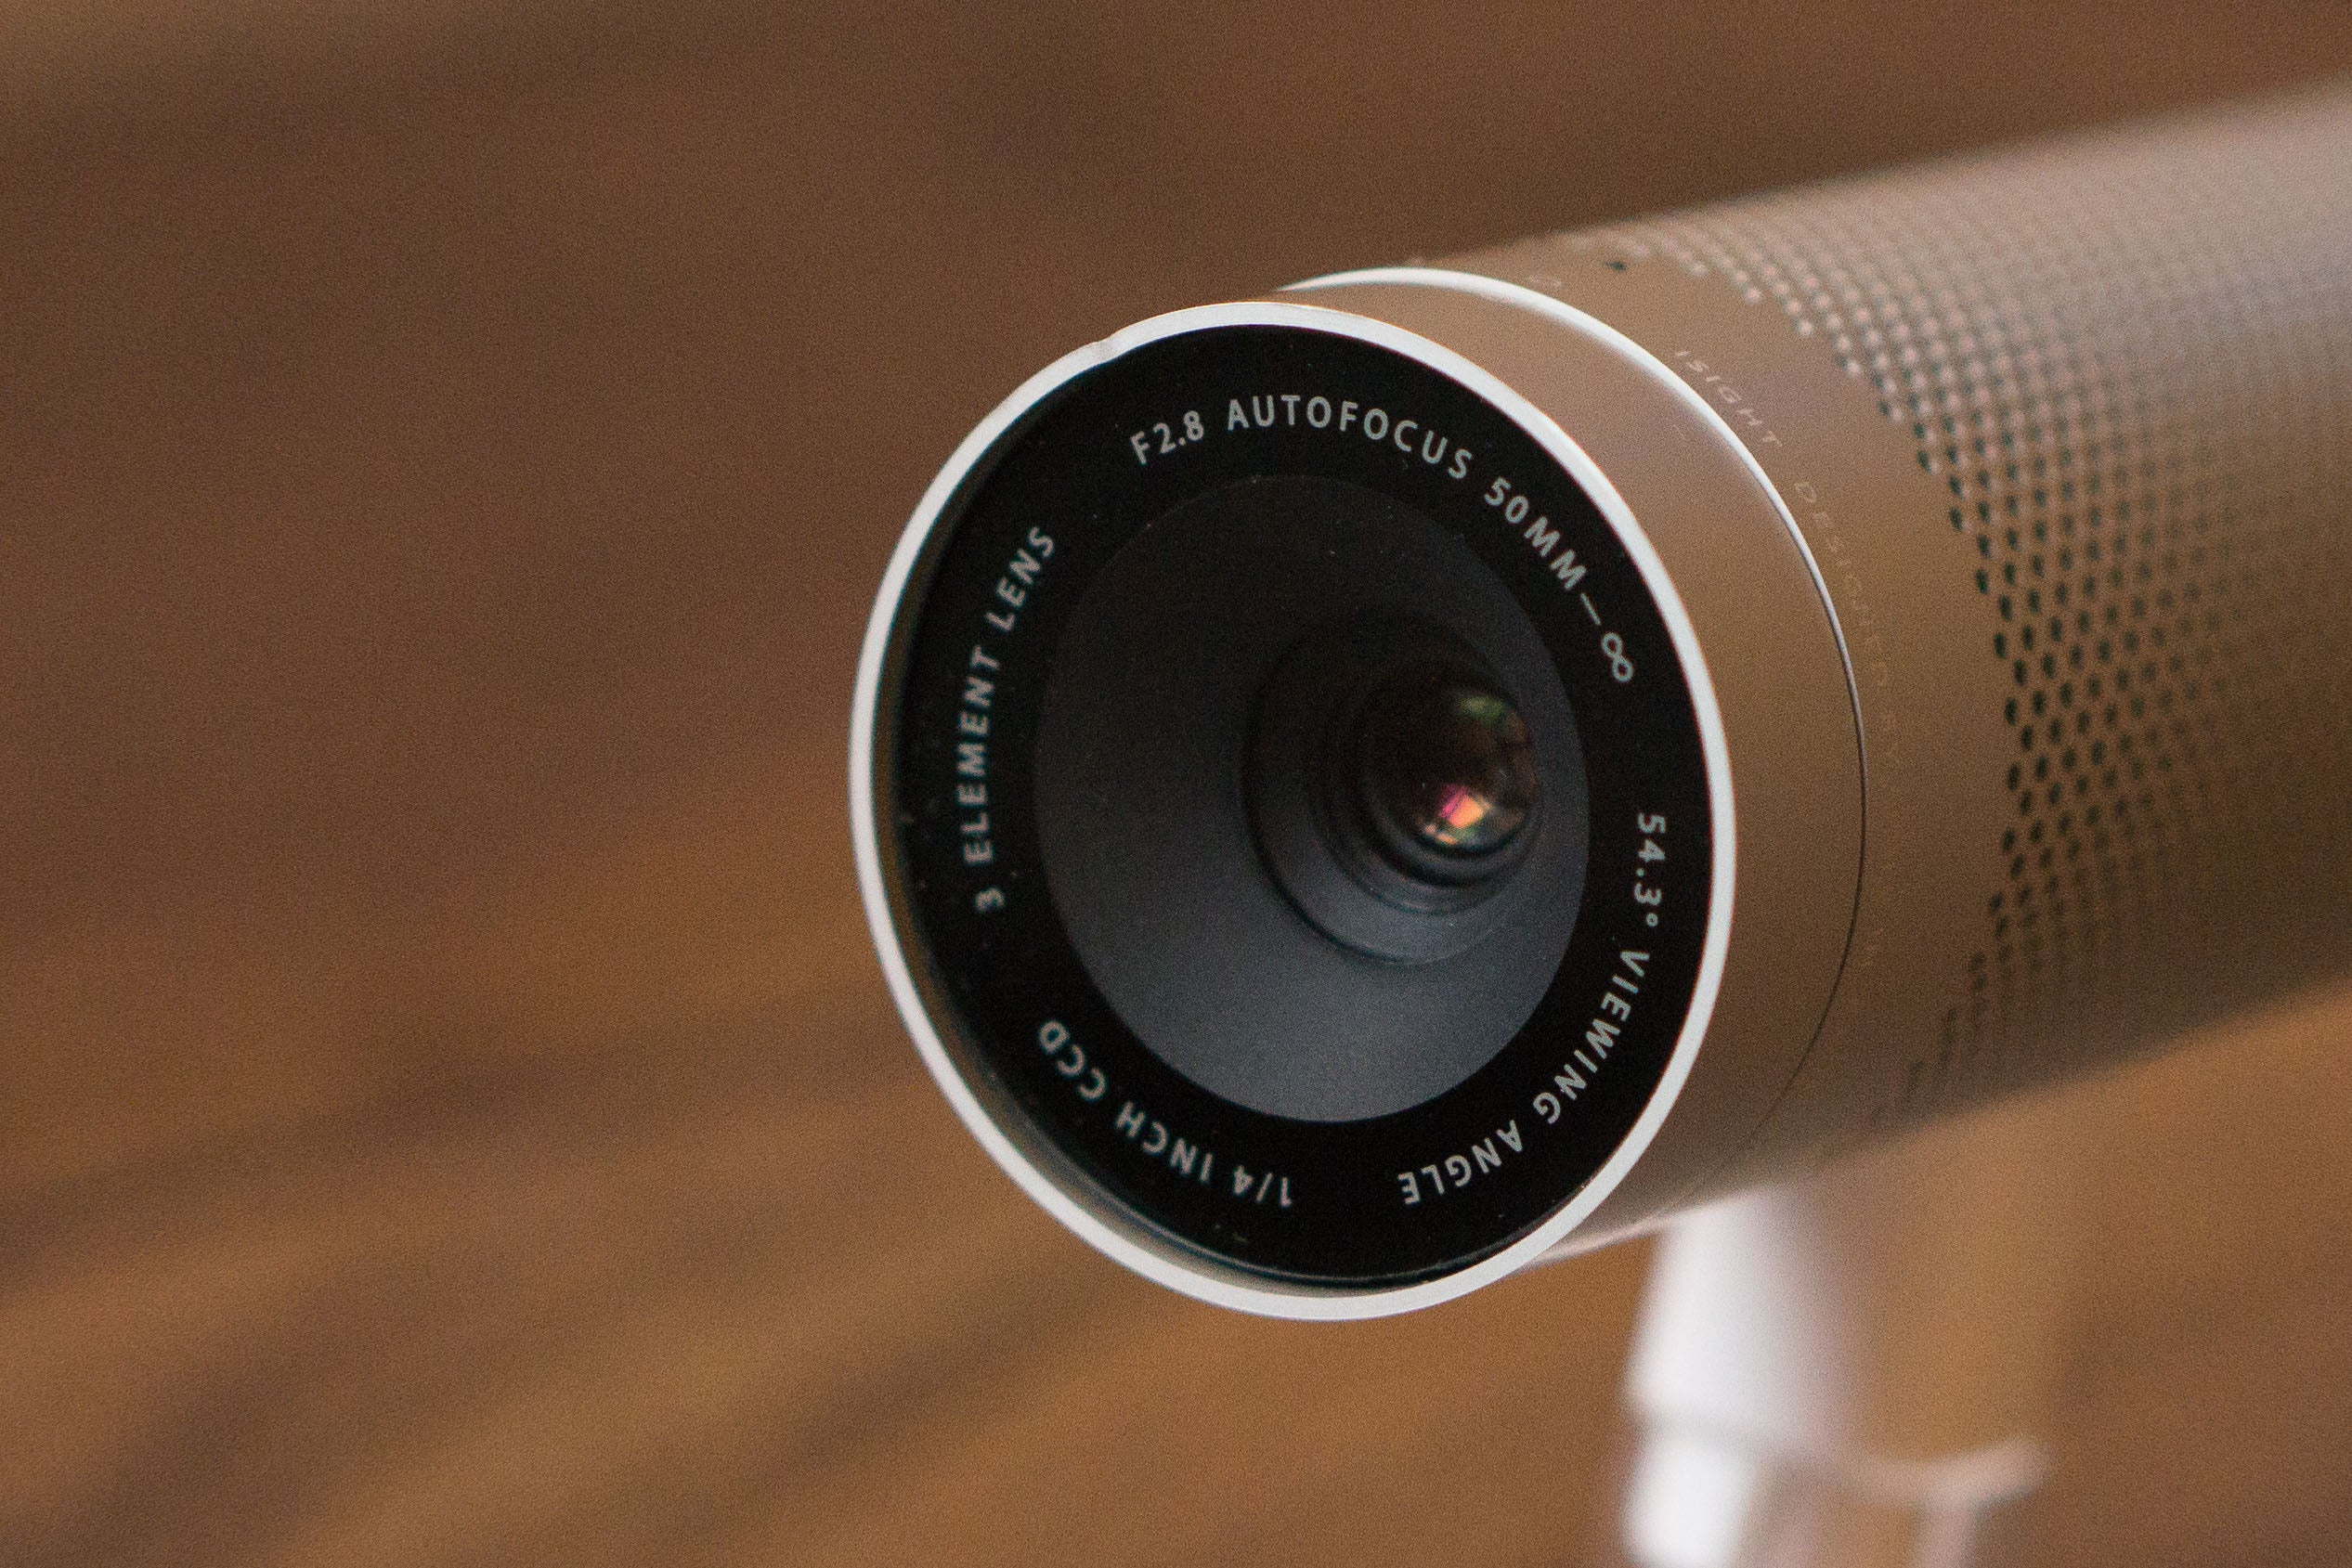 In praise of the glorious, wildly over-engineered iSight webcam ...